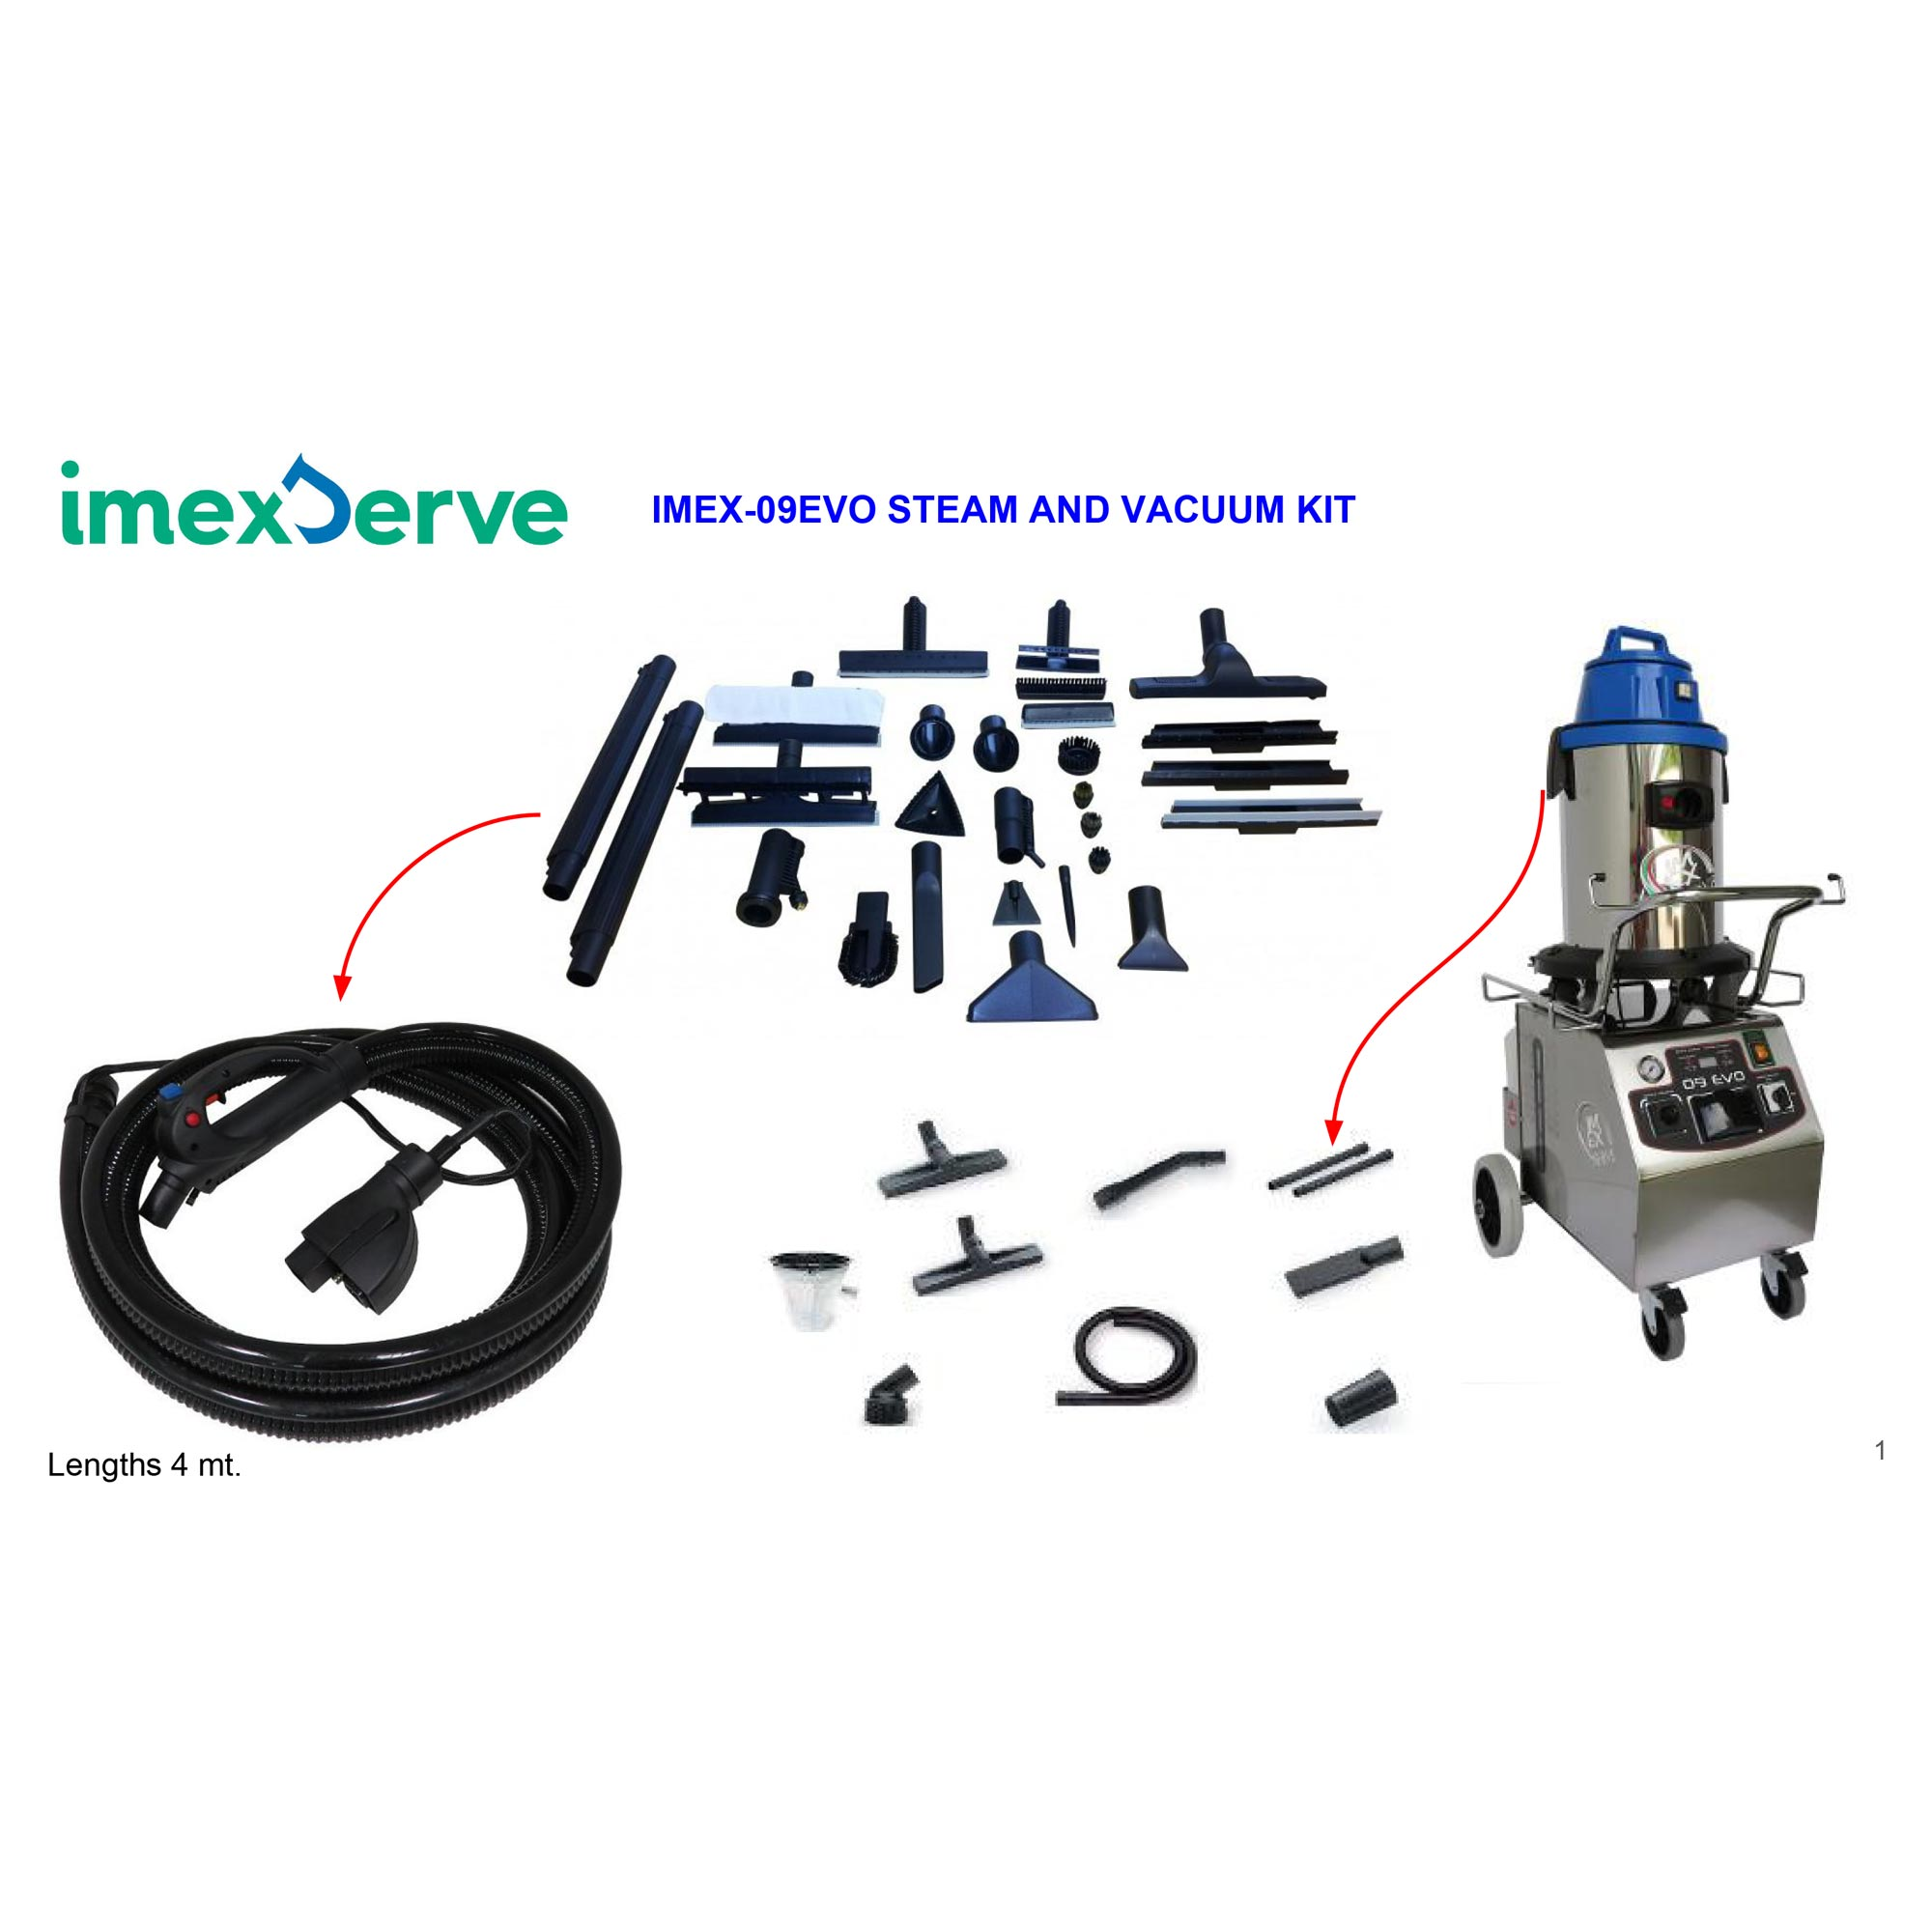 Imexserve 09evo Steam And Vacuum Vapor Cleaner With Accessories 3400 Carpet Extractor Diagram Parts List For Bissell Wetcarpetcleaner Click To Enlarge